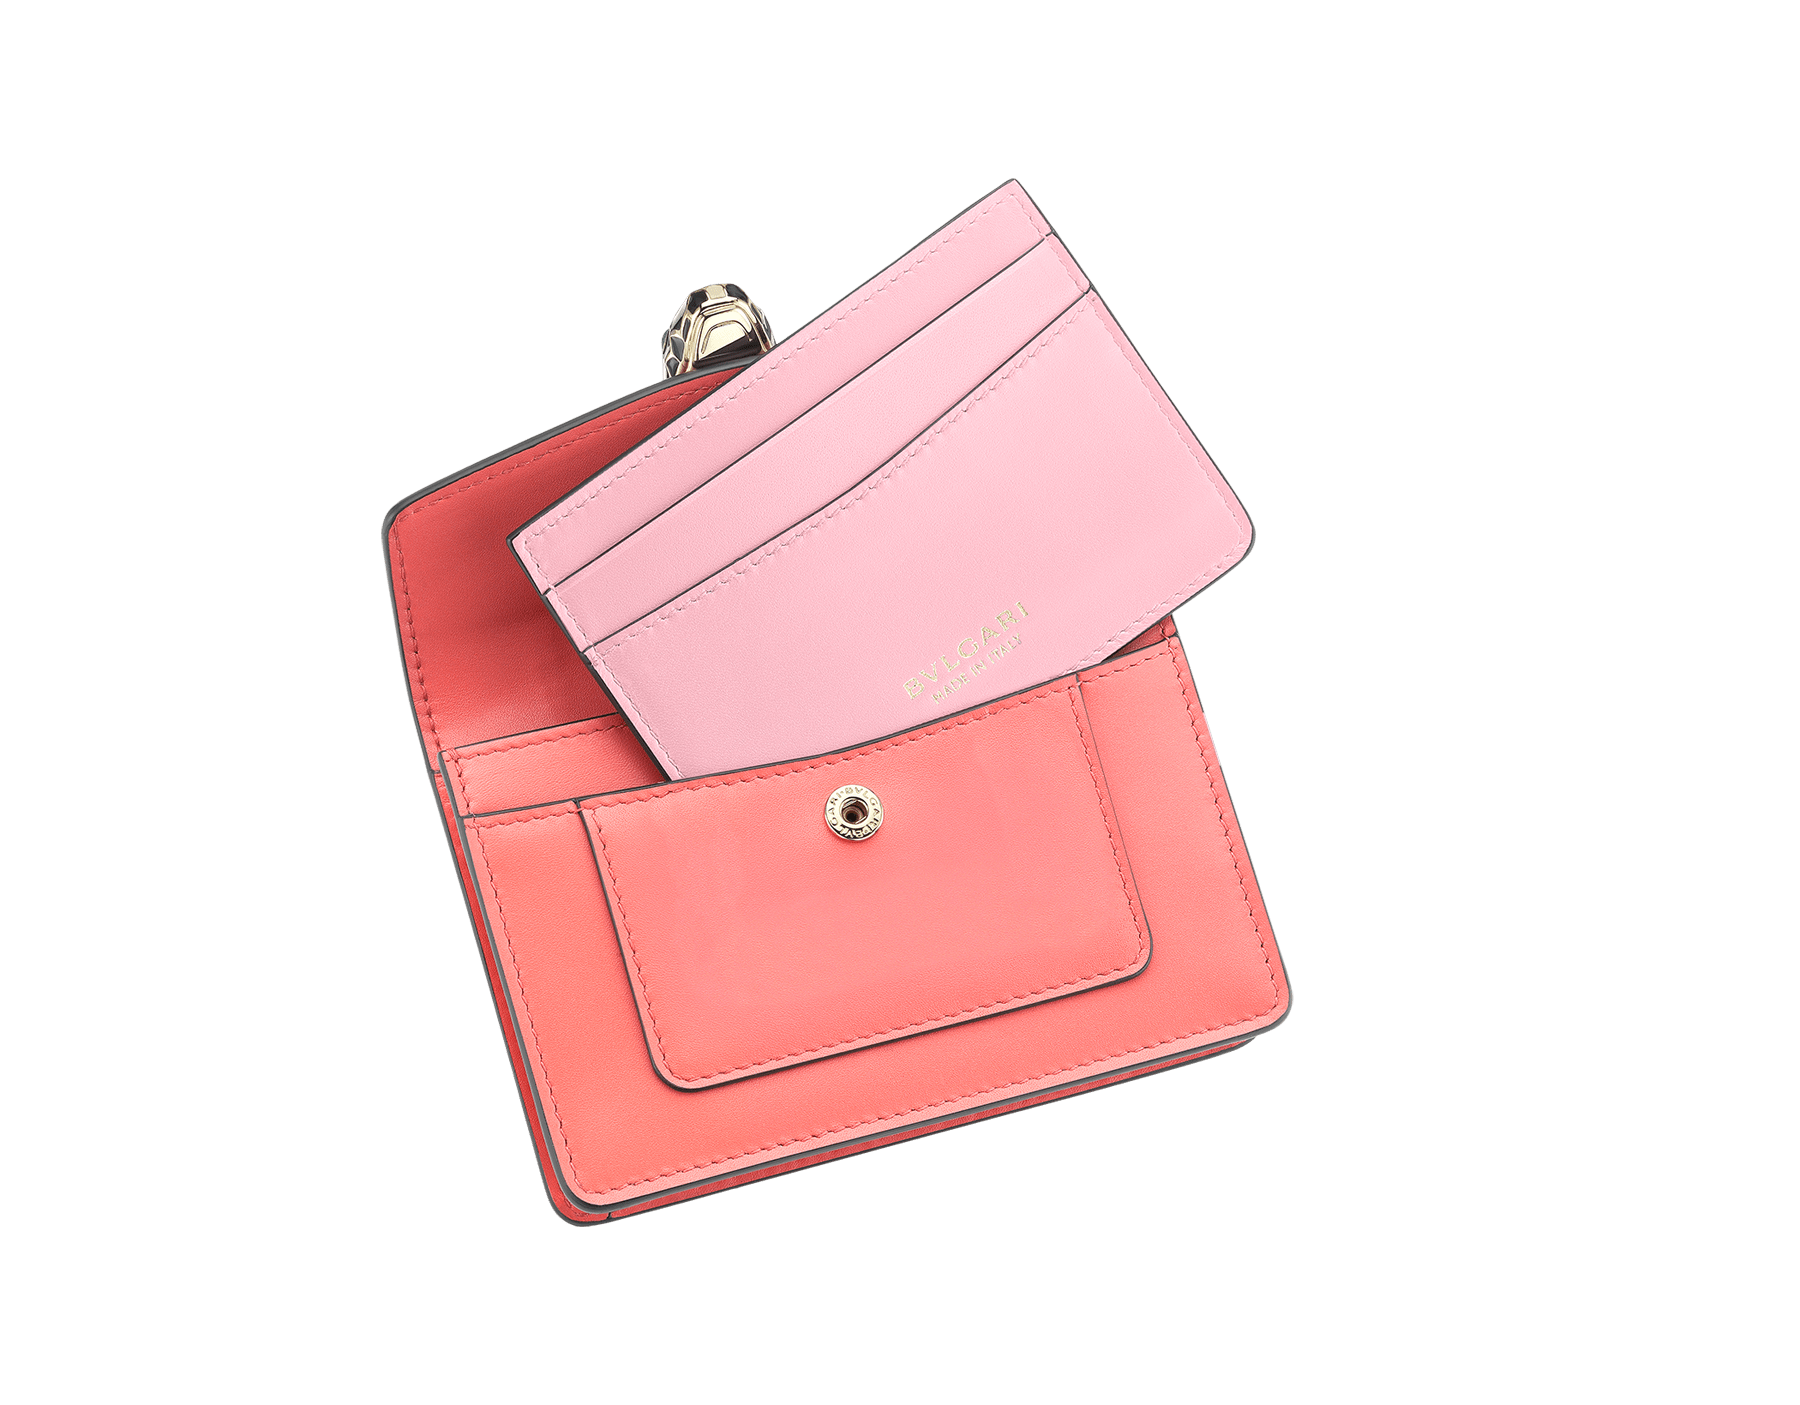 Serpenti Forever pocket credit card holder crafted silky coral and flamingo quartz calf leather, with flamingo quartz nappa lining. Iconic brass light gold plated snakehead stud closure in black and white enamel, with eyes in green malachite 289009 image 2